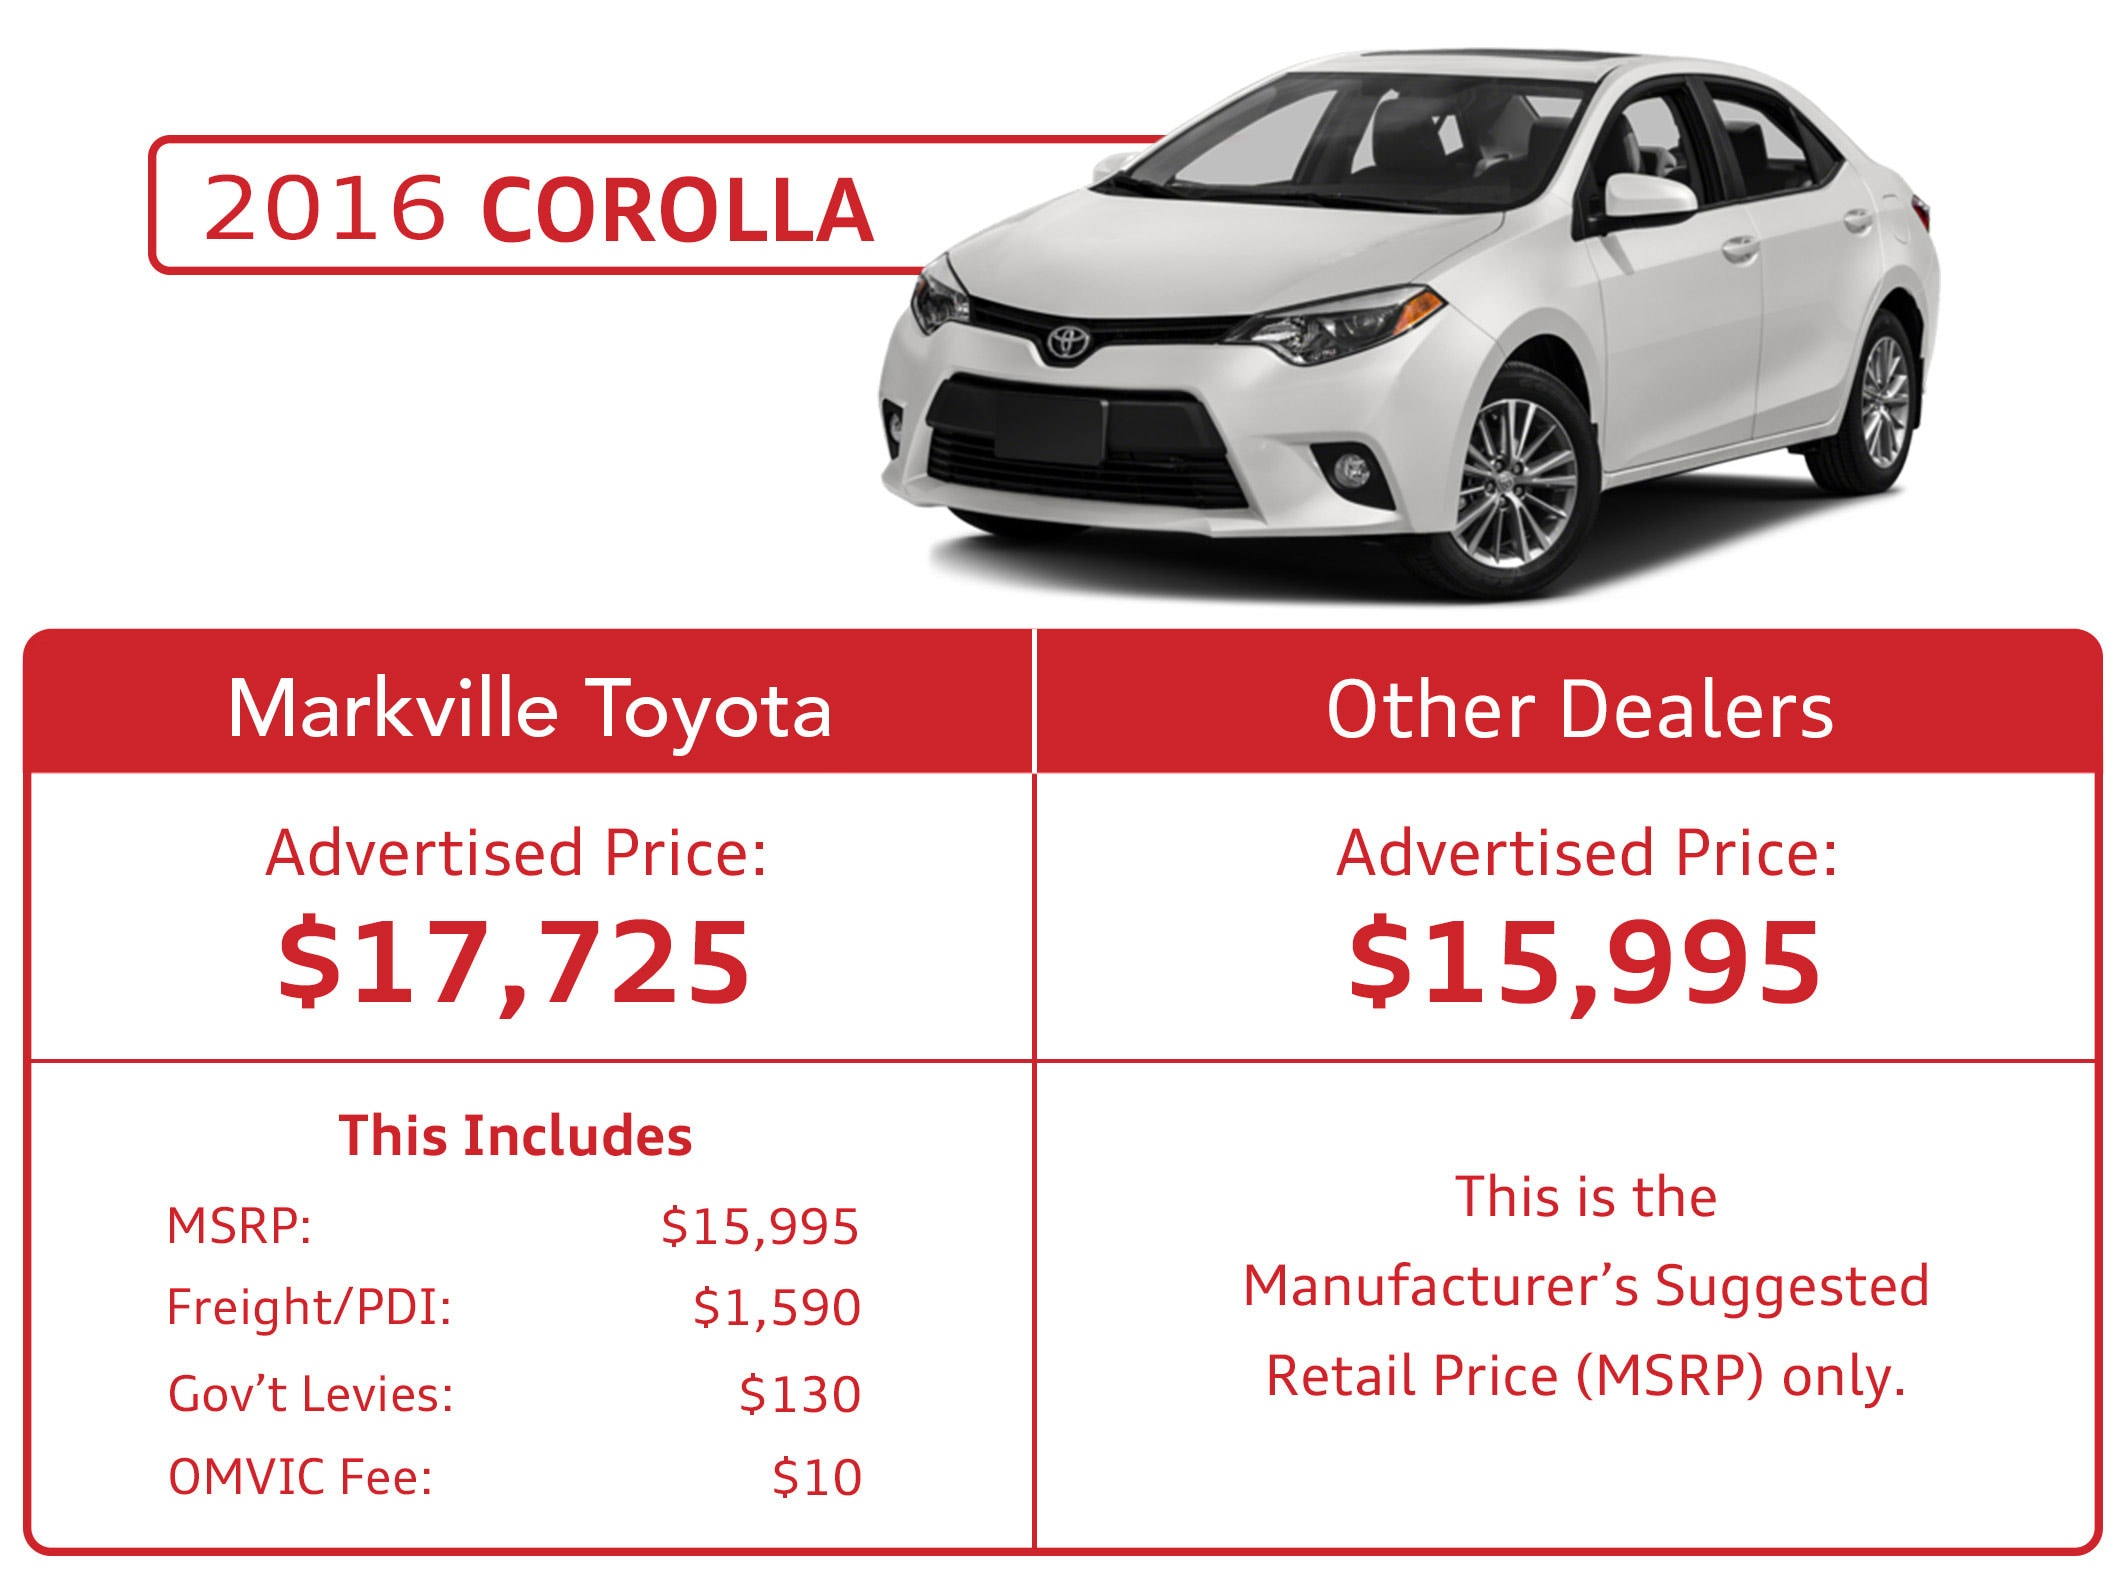 Markville Toyota Pricing Model